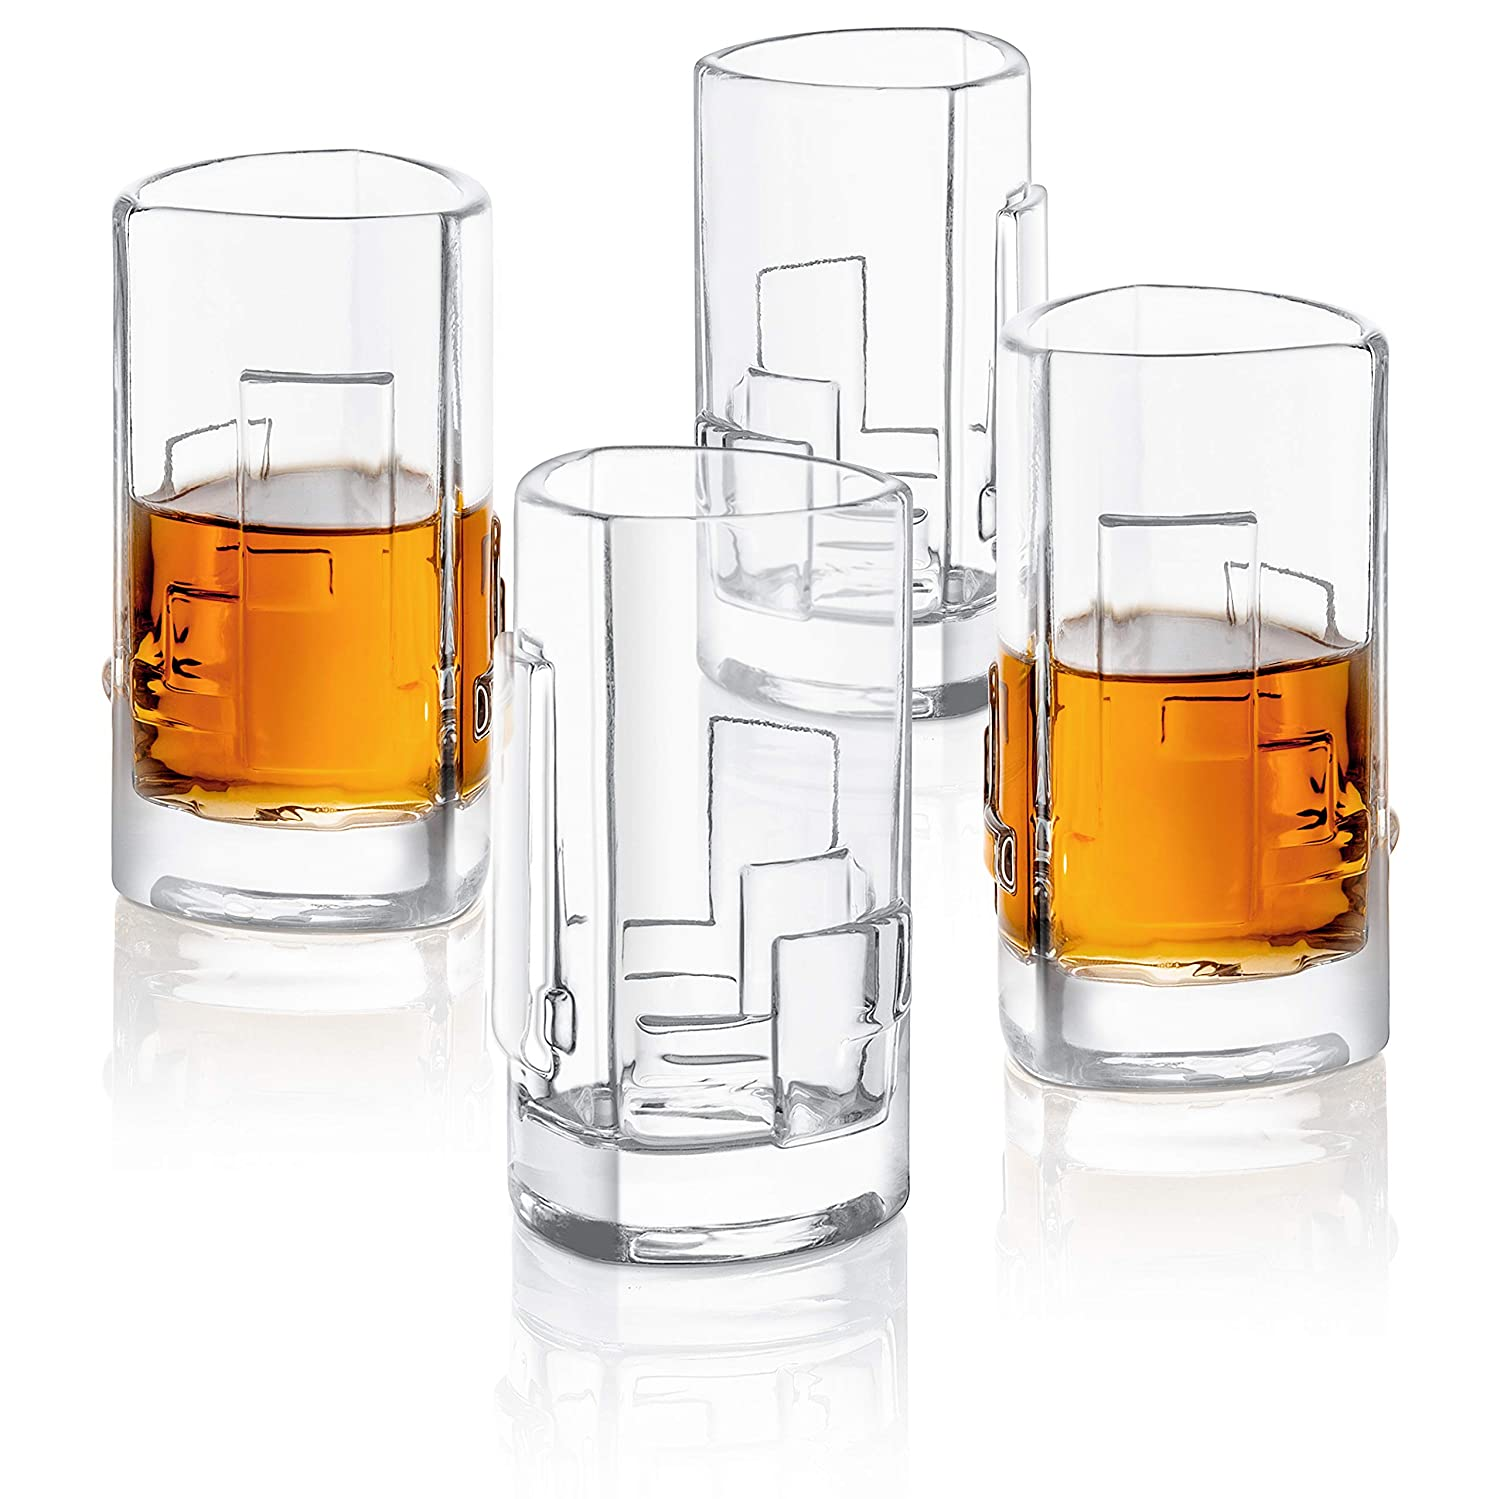 JoyJolt Revere Drinking Glasses Ultra Clear Whiskey Glass for Bourbon and Liquor Set Of 2 Glassware Old Fashioned Glasses 13-Ounce